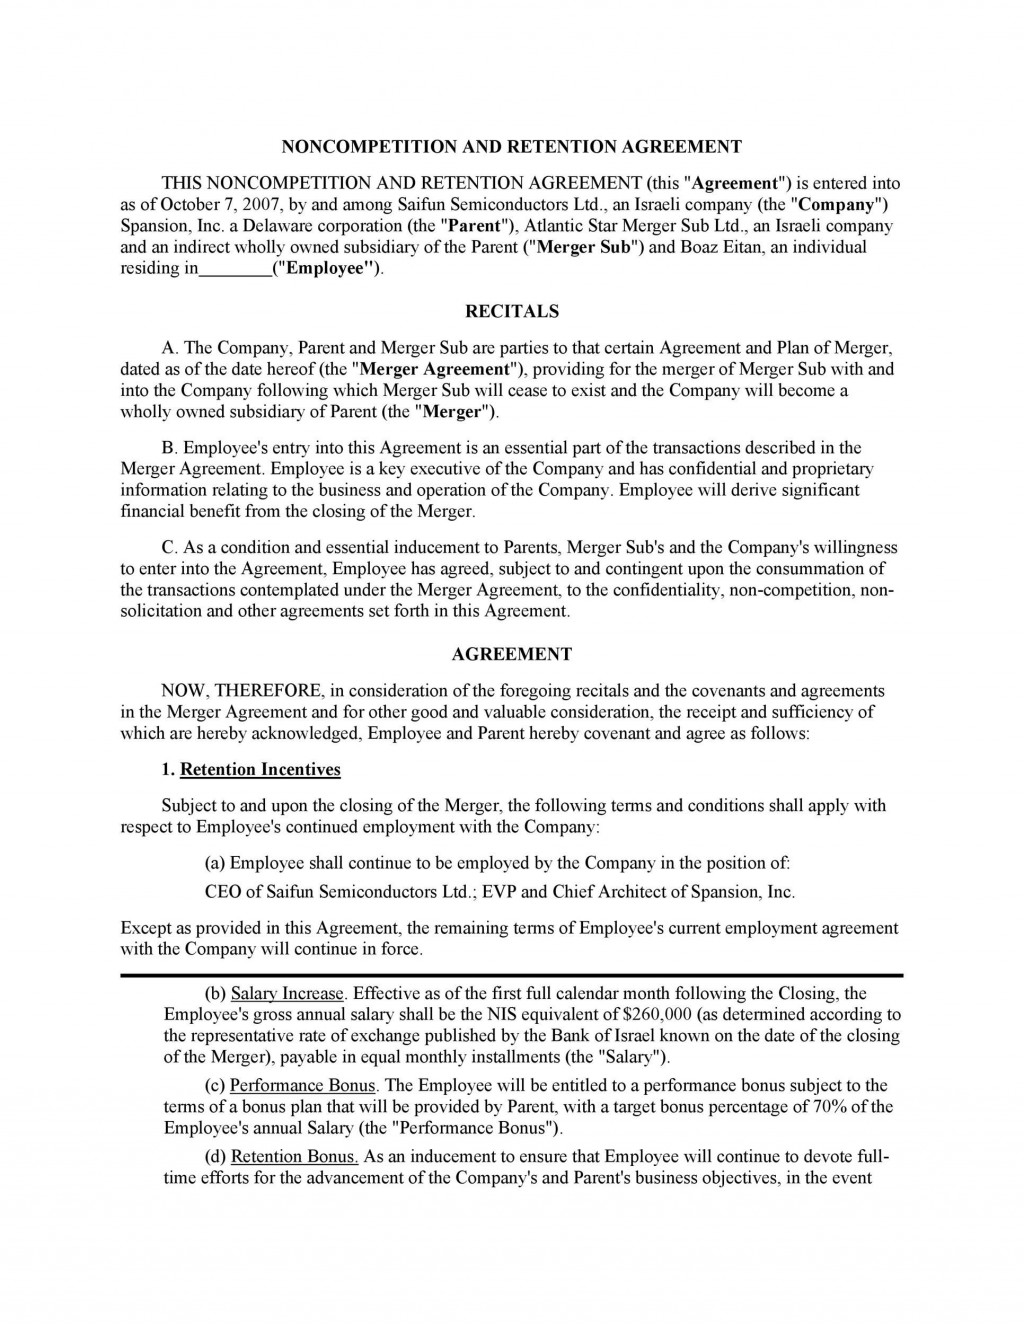 004 Archaicawful Non Compete Agreement Template California High Definition Large